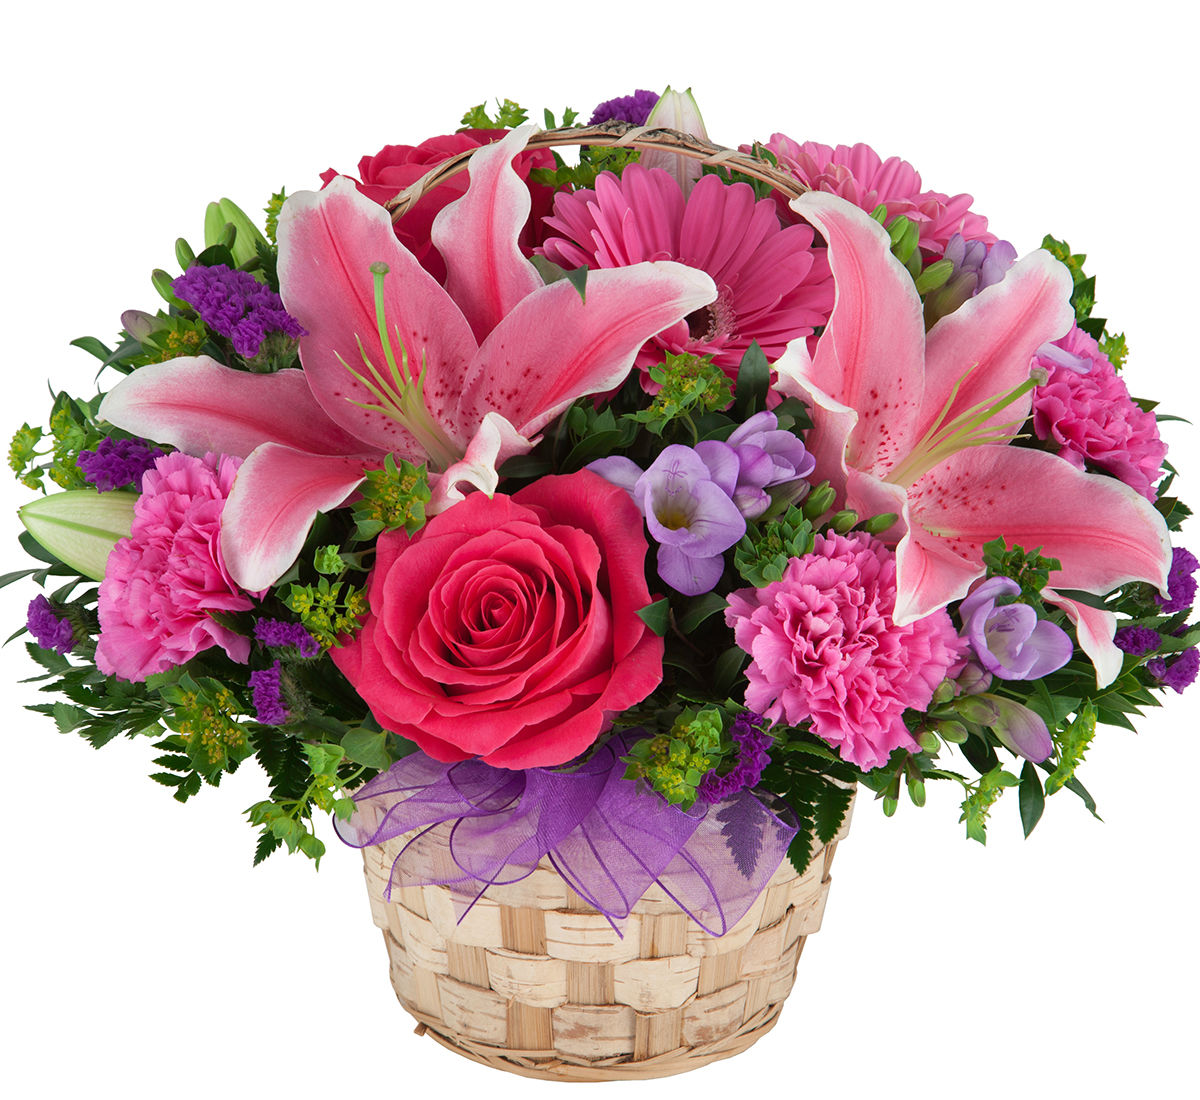 mother's day flowers · canada flowers.ca, Beautiful flower